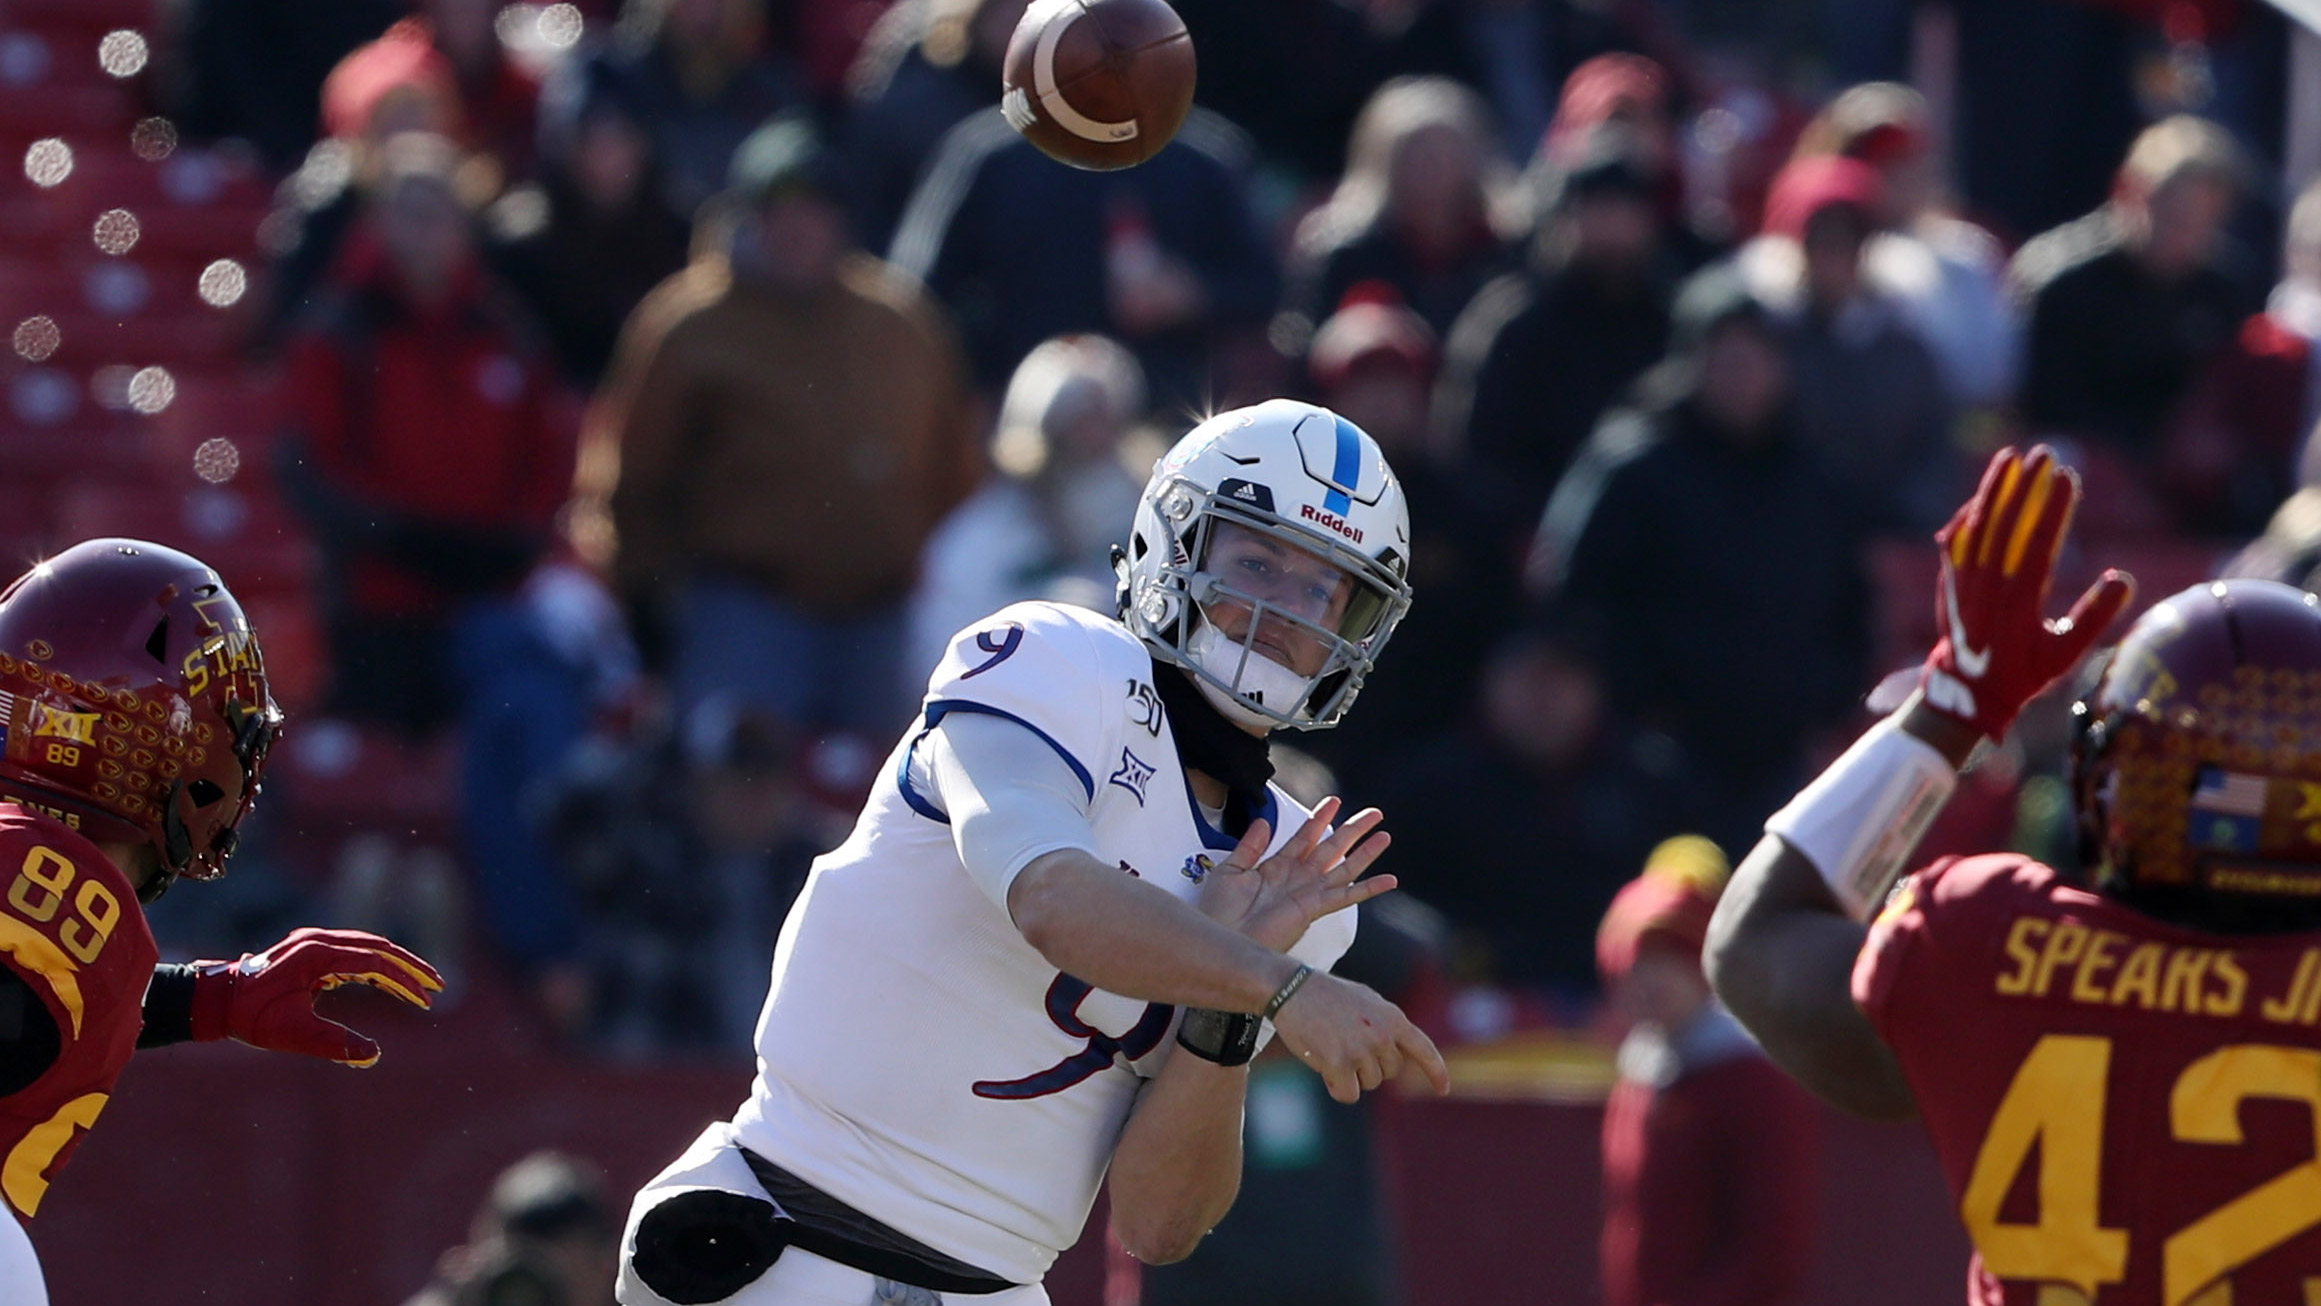 Kansas' comeback bid interrupted by Iowa State's late surge in 41-31 loss